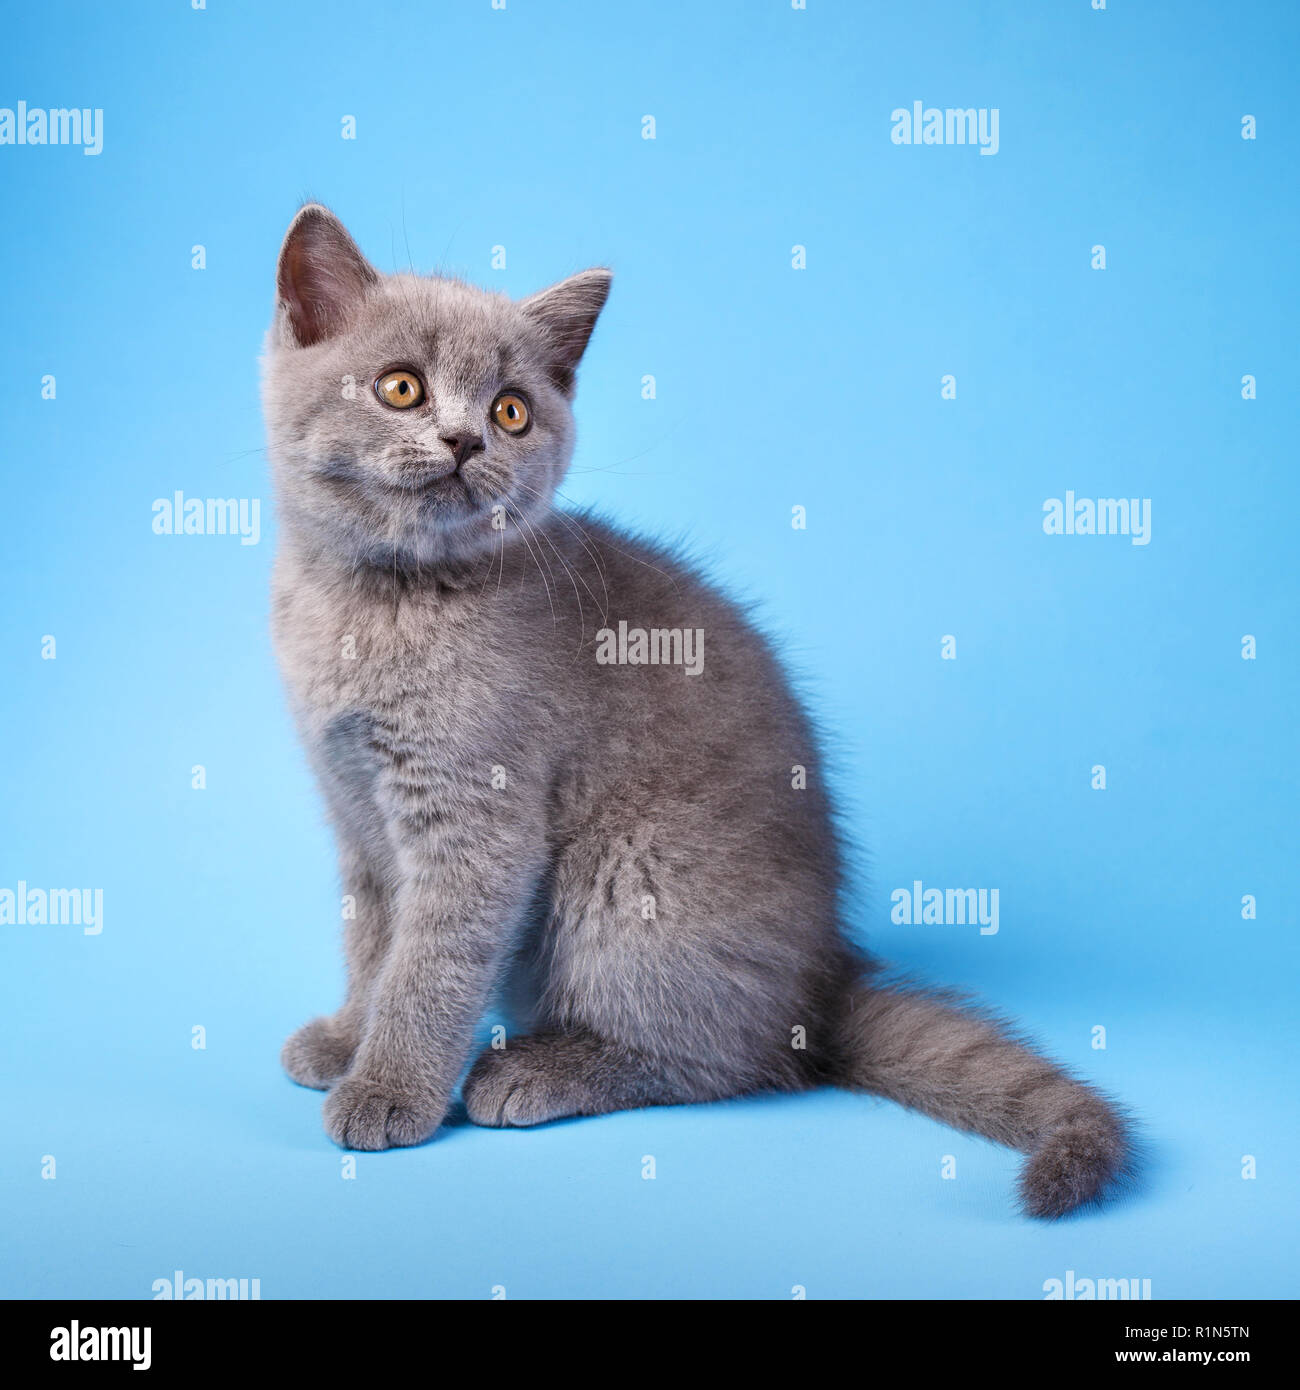 Gray kitty with fluffy mustache on a blue background. - Stock Image